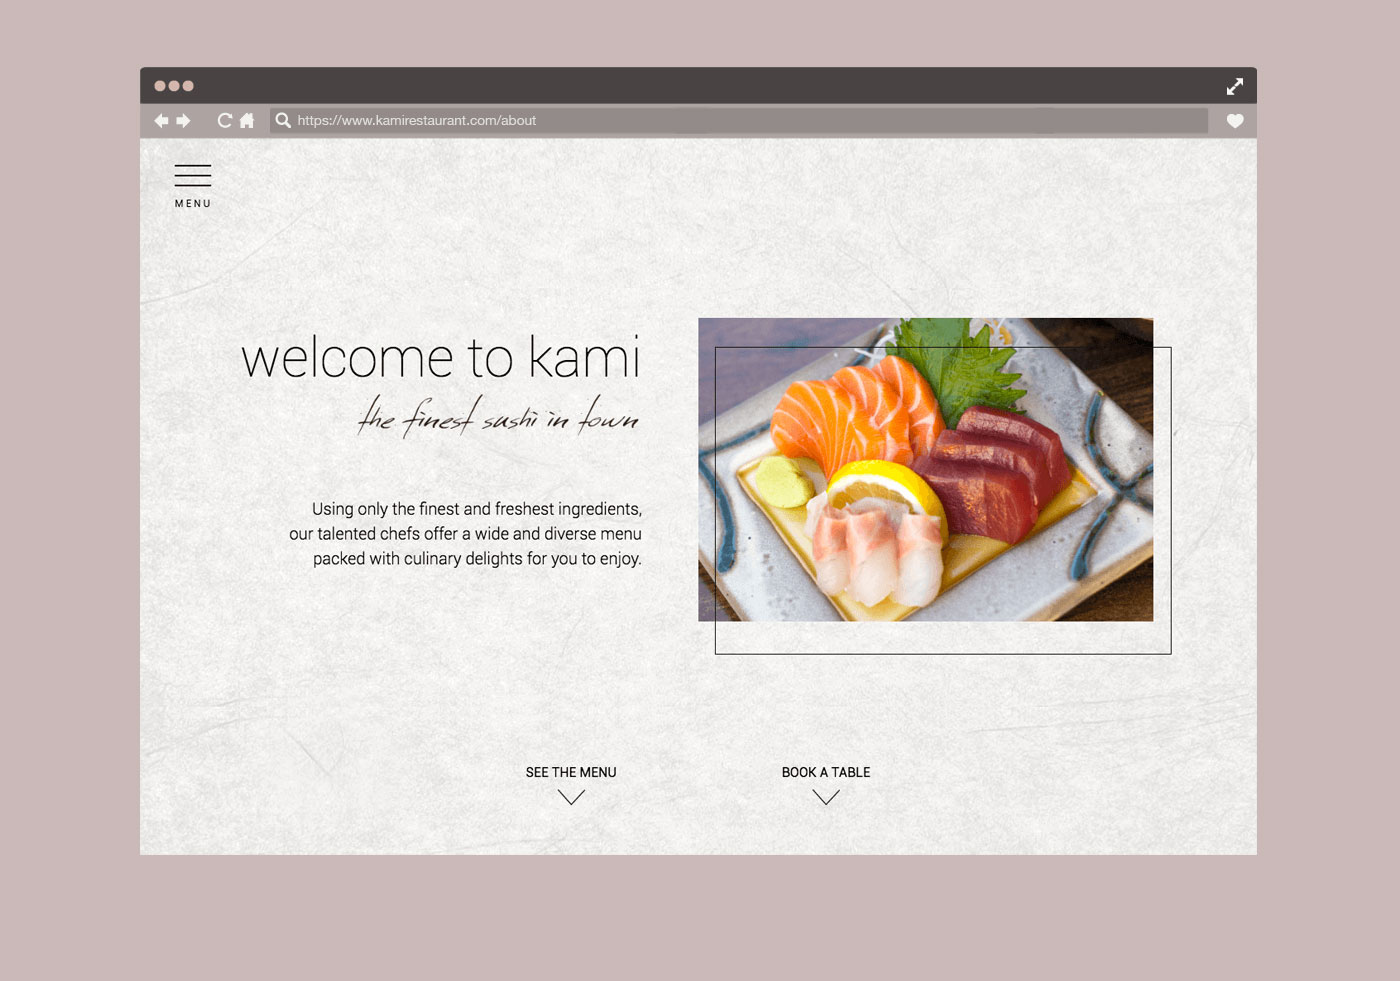 monginigraphics - kami london website